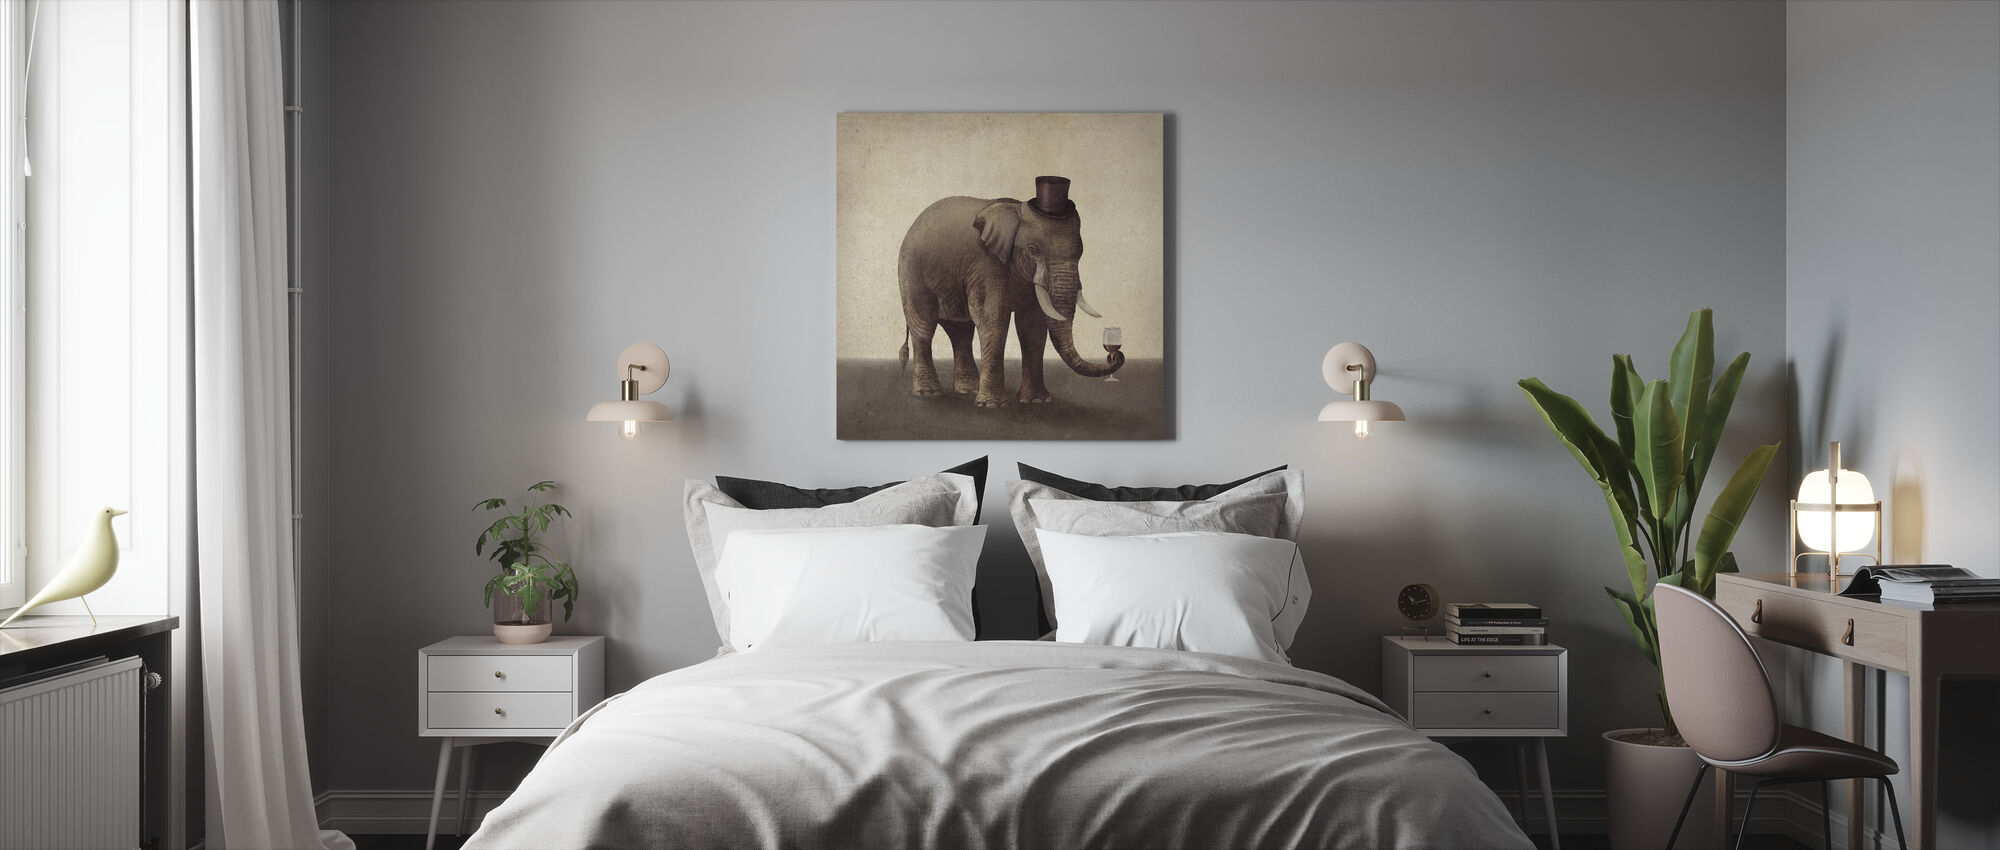 Fine Vintage - Canvas print - Bedroom